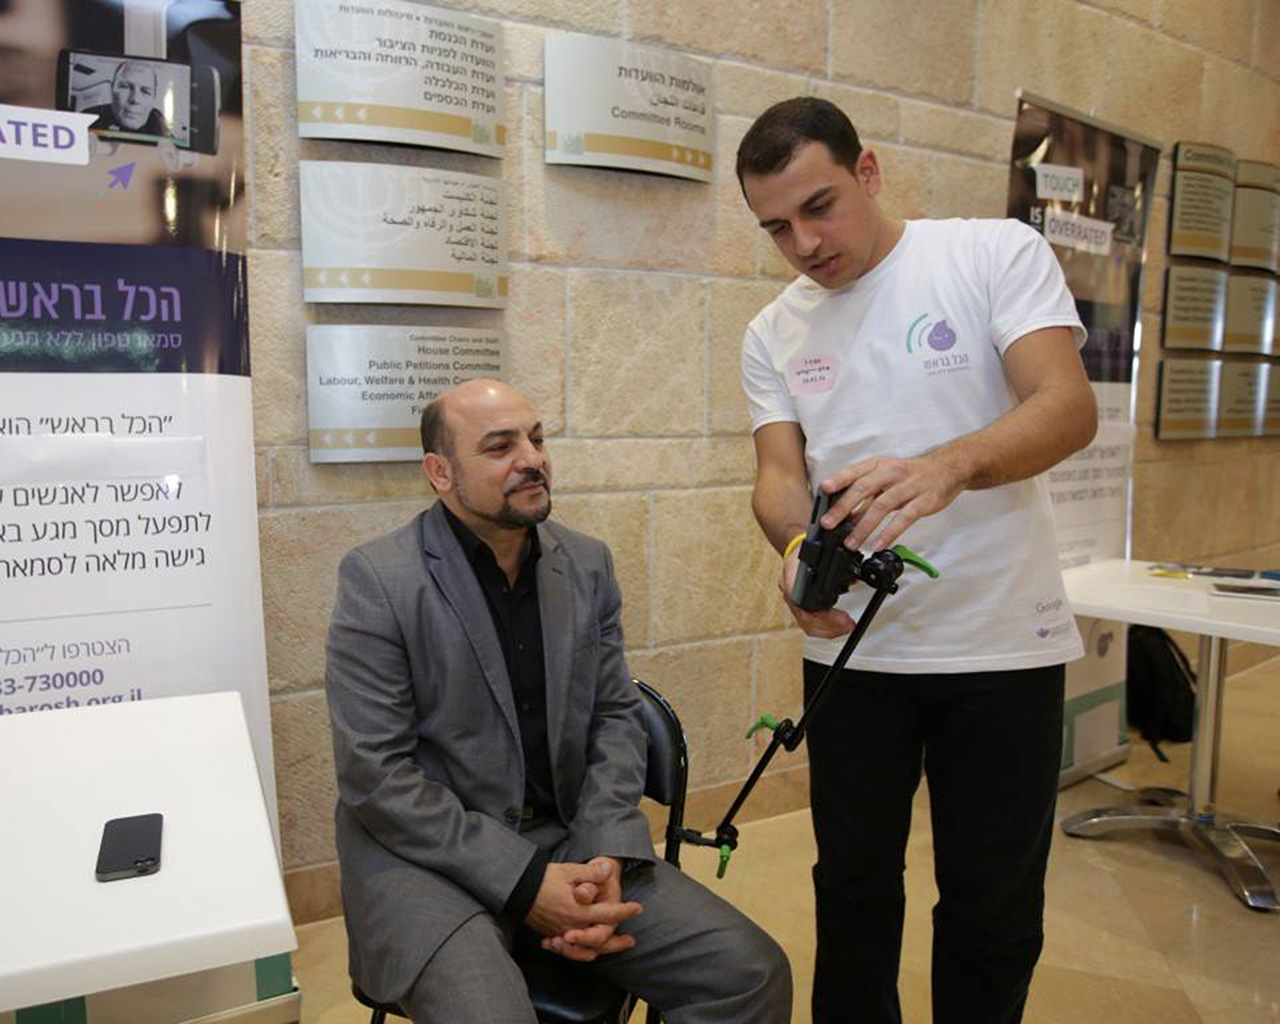 Khaled Ghanayem showing an artificial limb to a person.